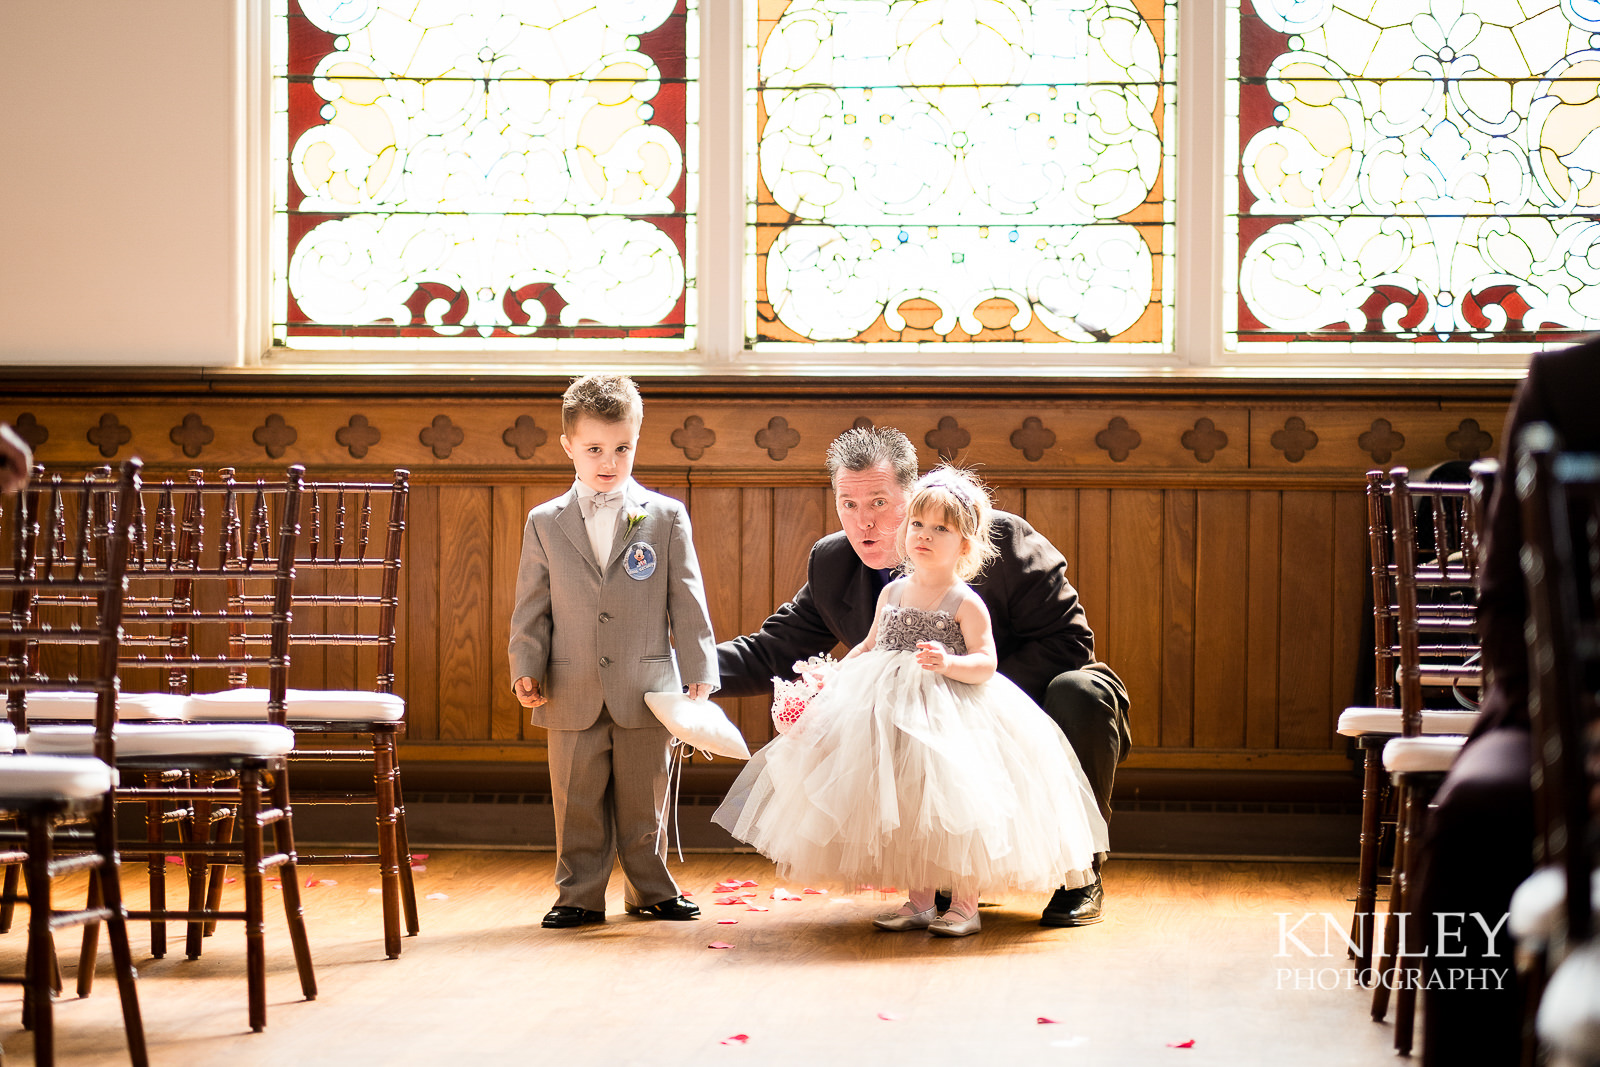 031 - Westminster Chapel - Rochester NY wedding photo - Kniley Photography.jpg